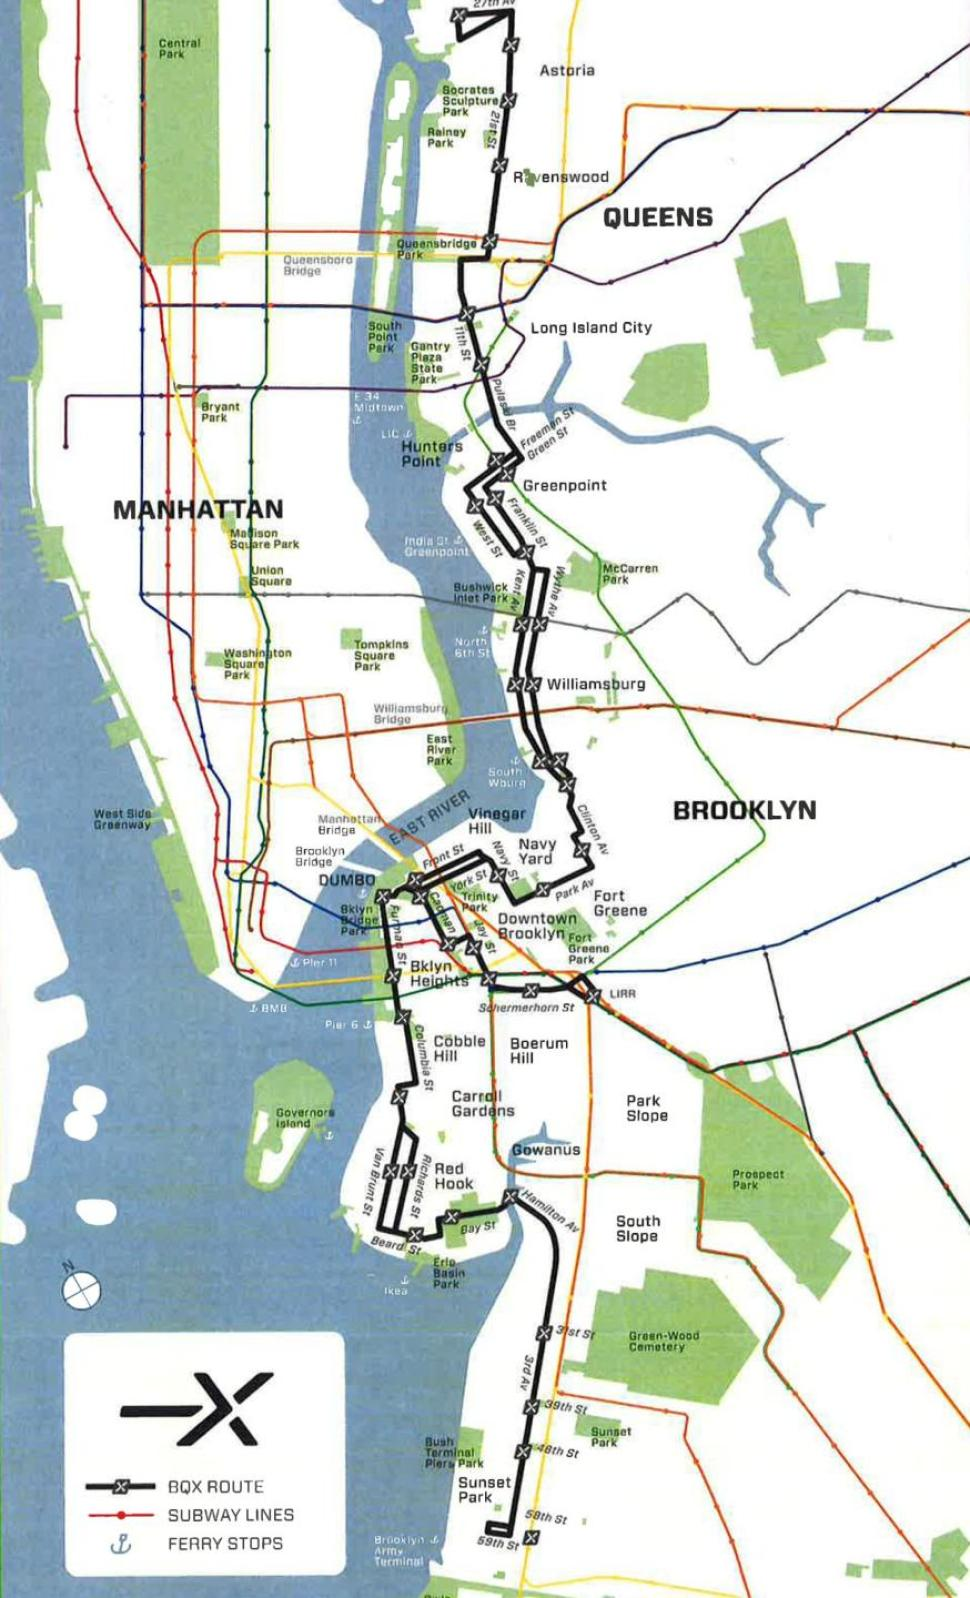 https://i2.wp.com/weheartastoria.com/wp-content/uploads/2016/01/Brooklyn-Queens-Streetcar-Proposal-Map-NYC.jpg